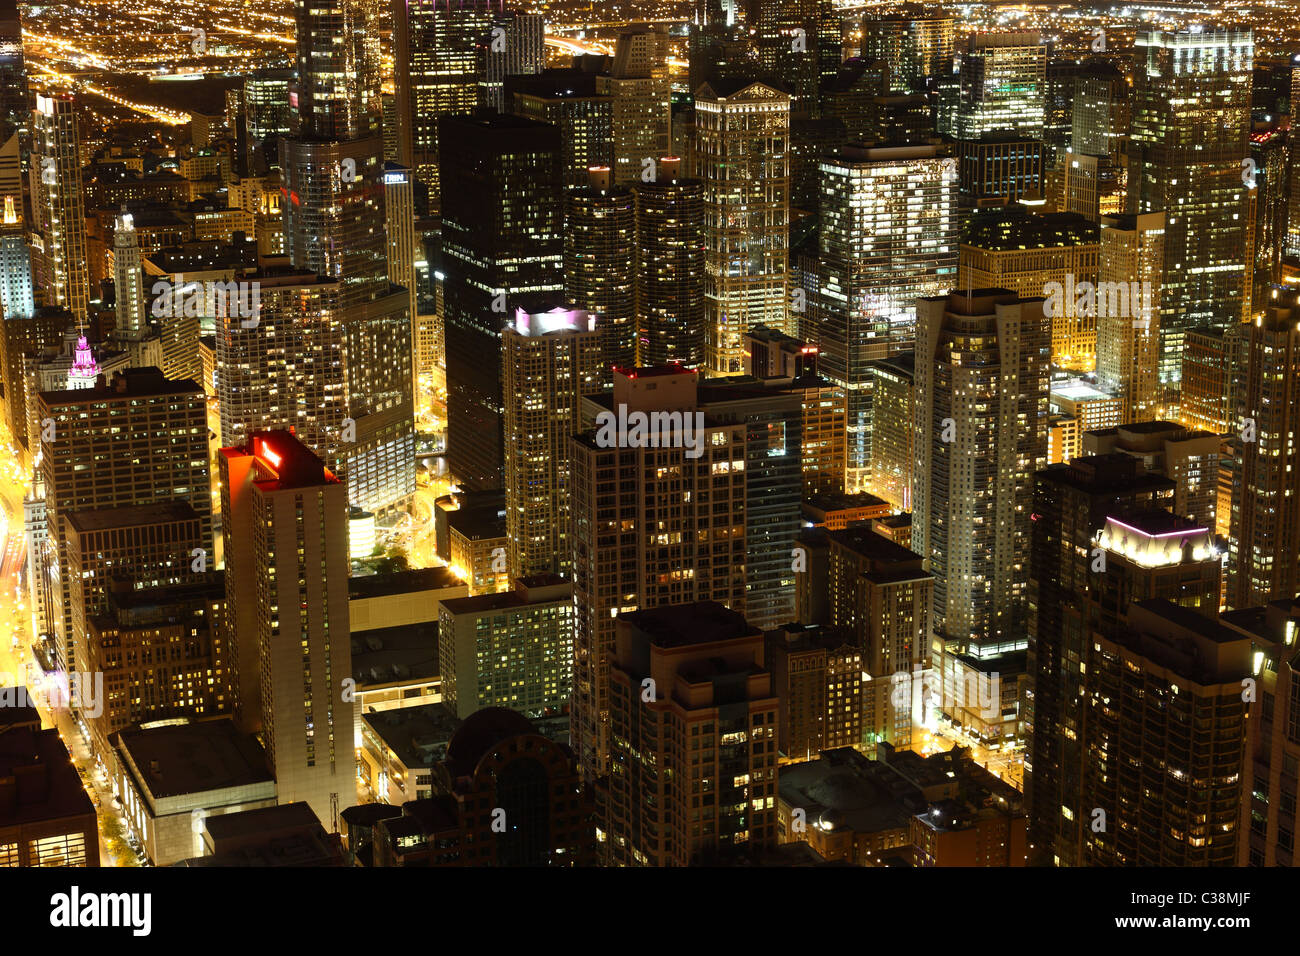 View to Downtown Chicago / USA from high above at night - Stock Image